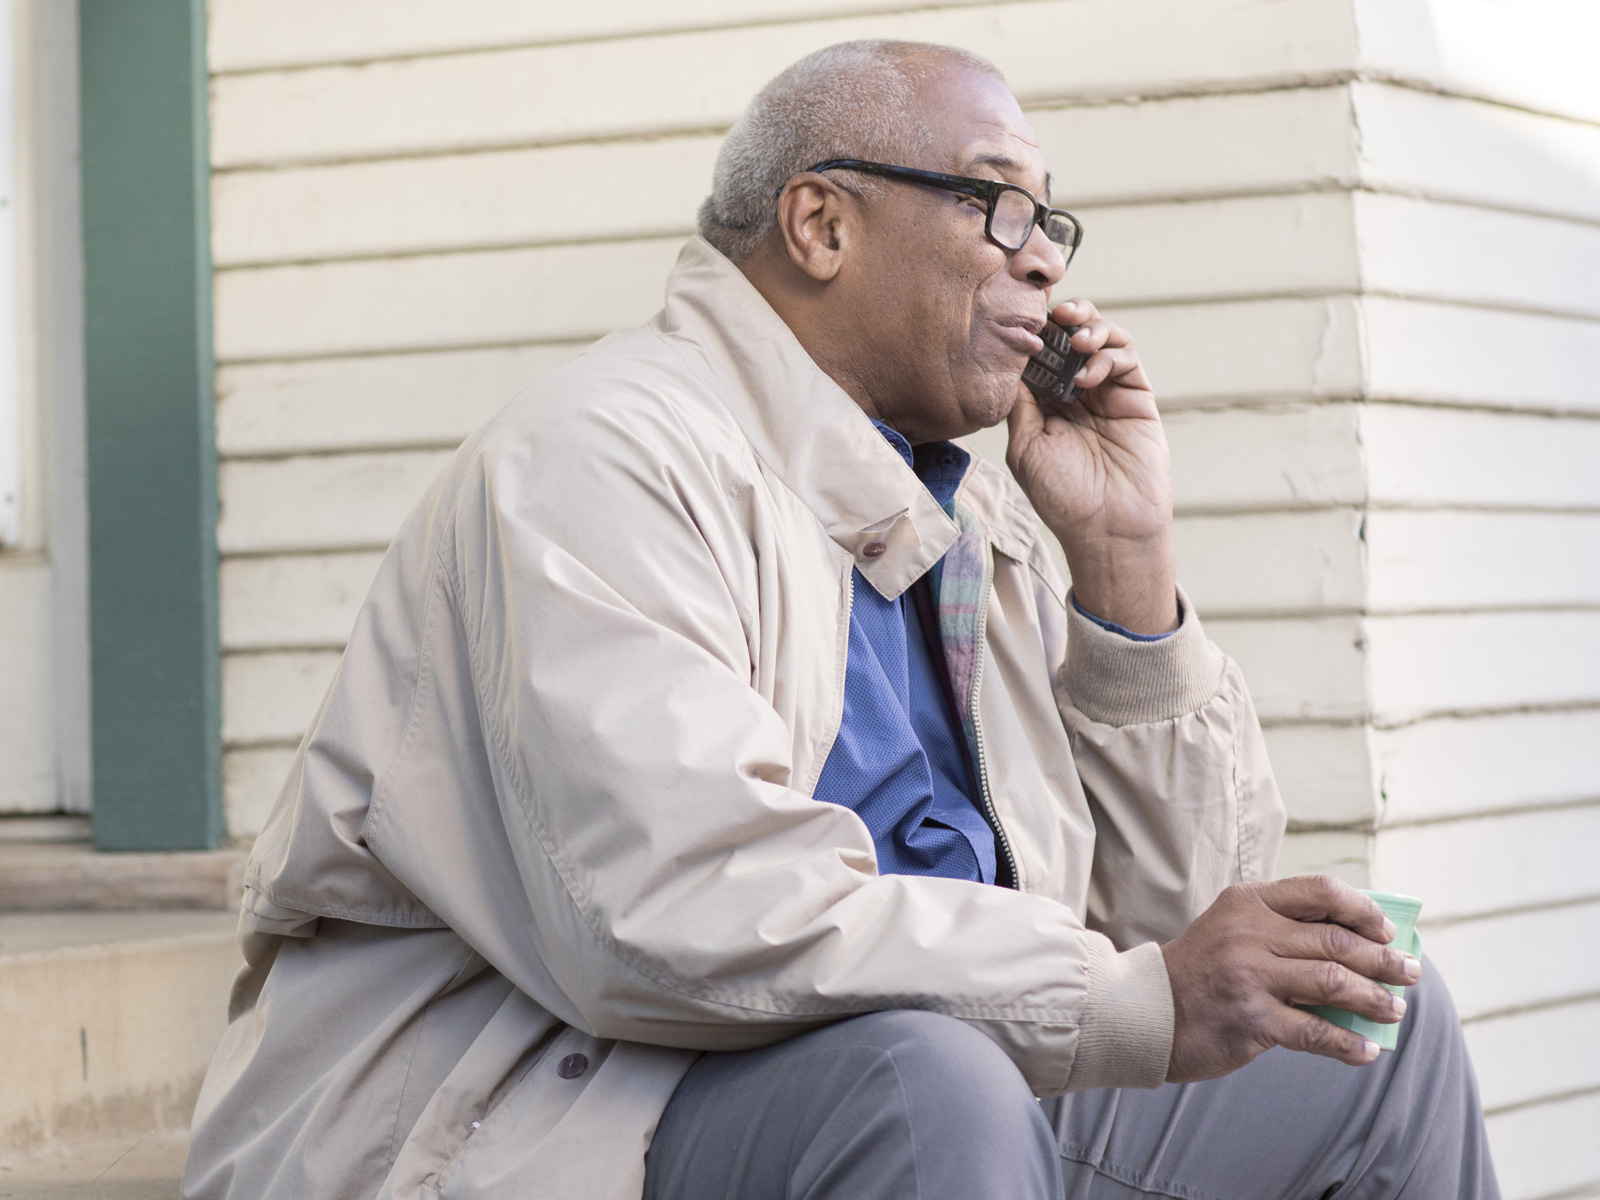 Senior man sitting on porch steps with mobile phone